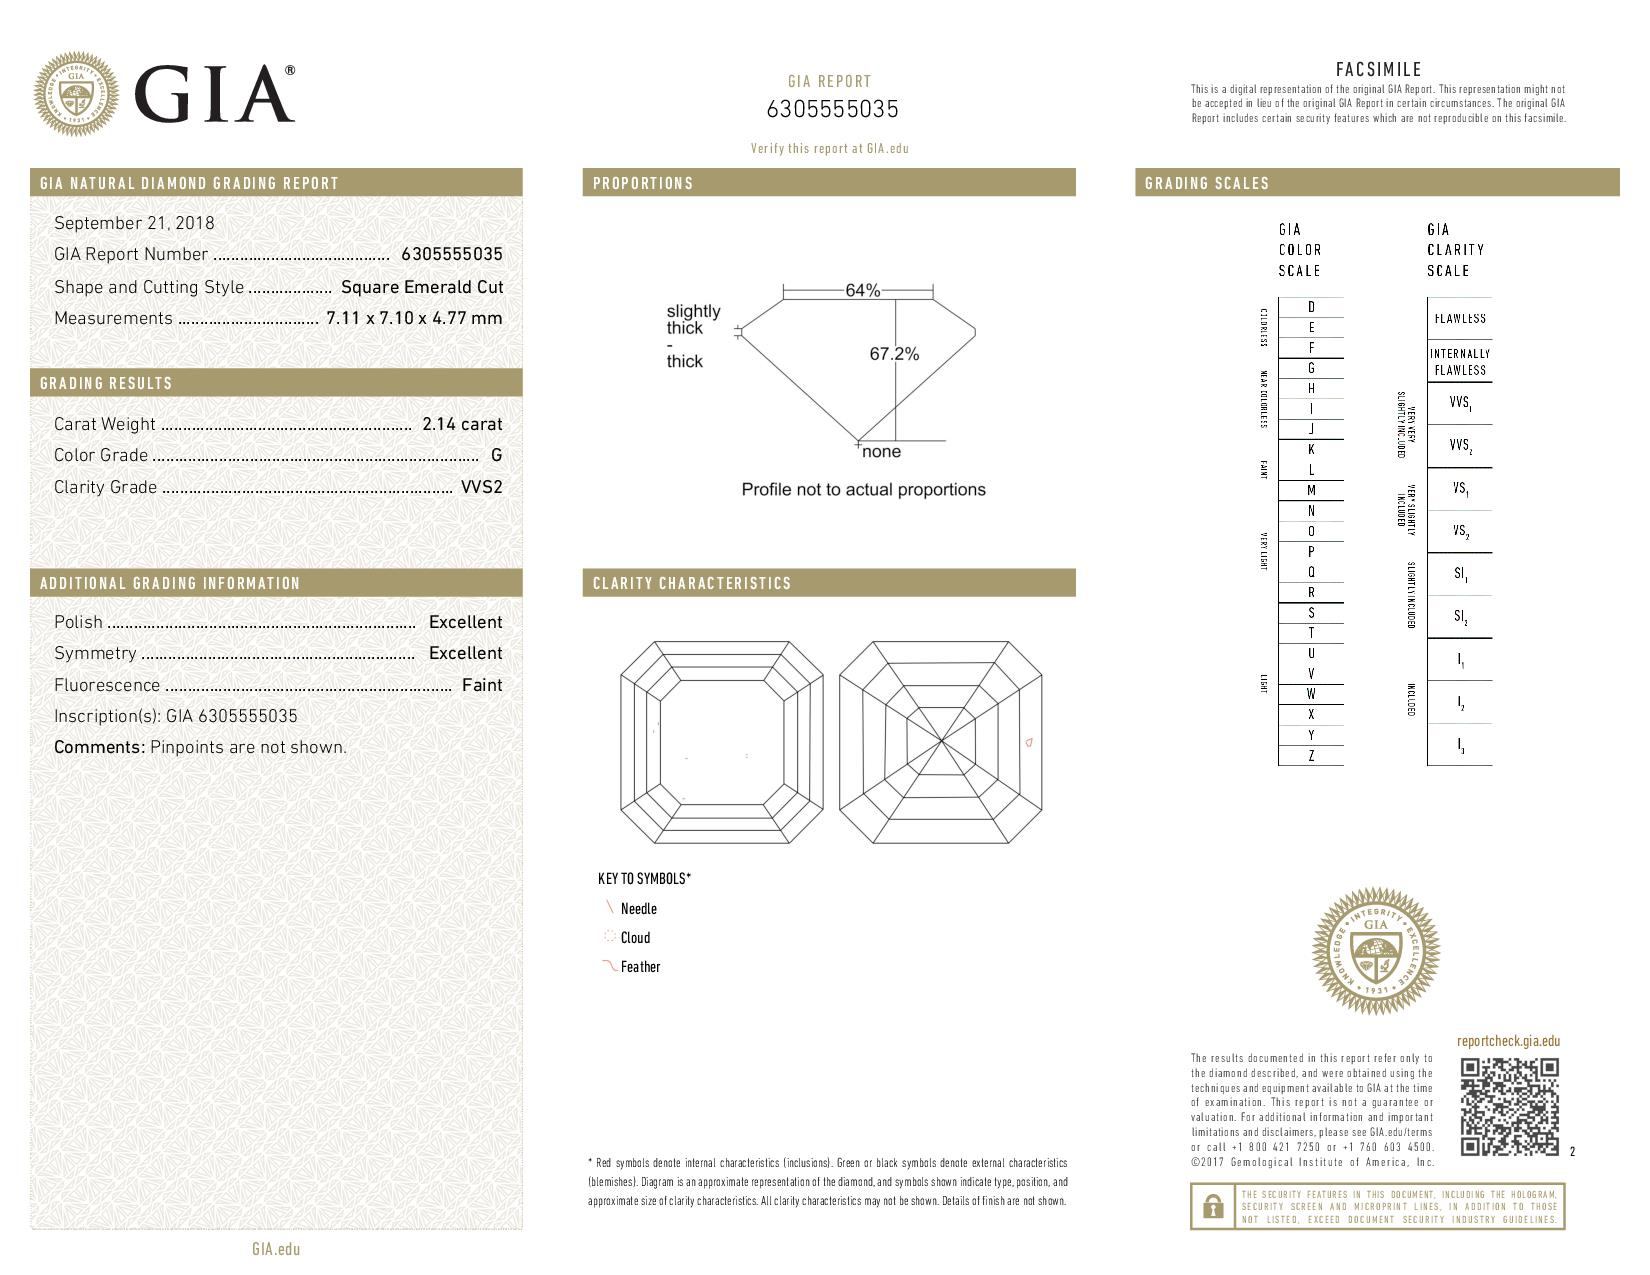 This is a 2.14 carat asscher shape, G color, VVS2 clarity natural diamond accompanied by a GIA grading report.